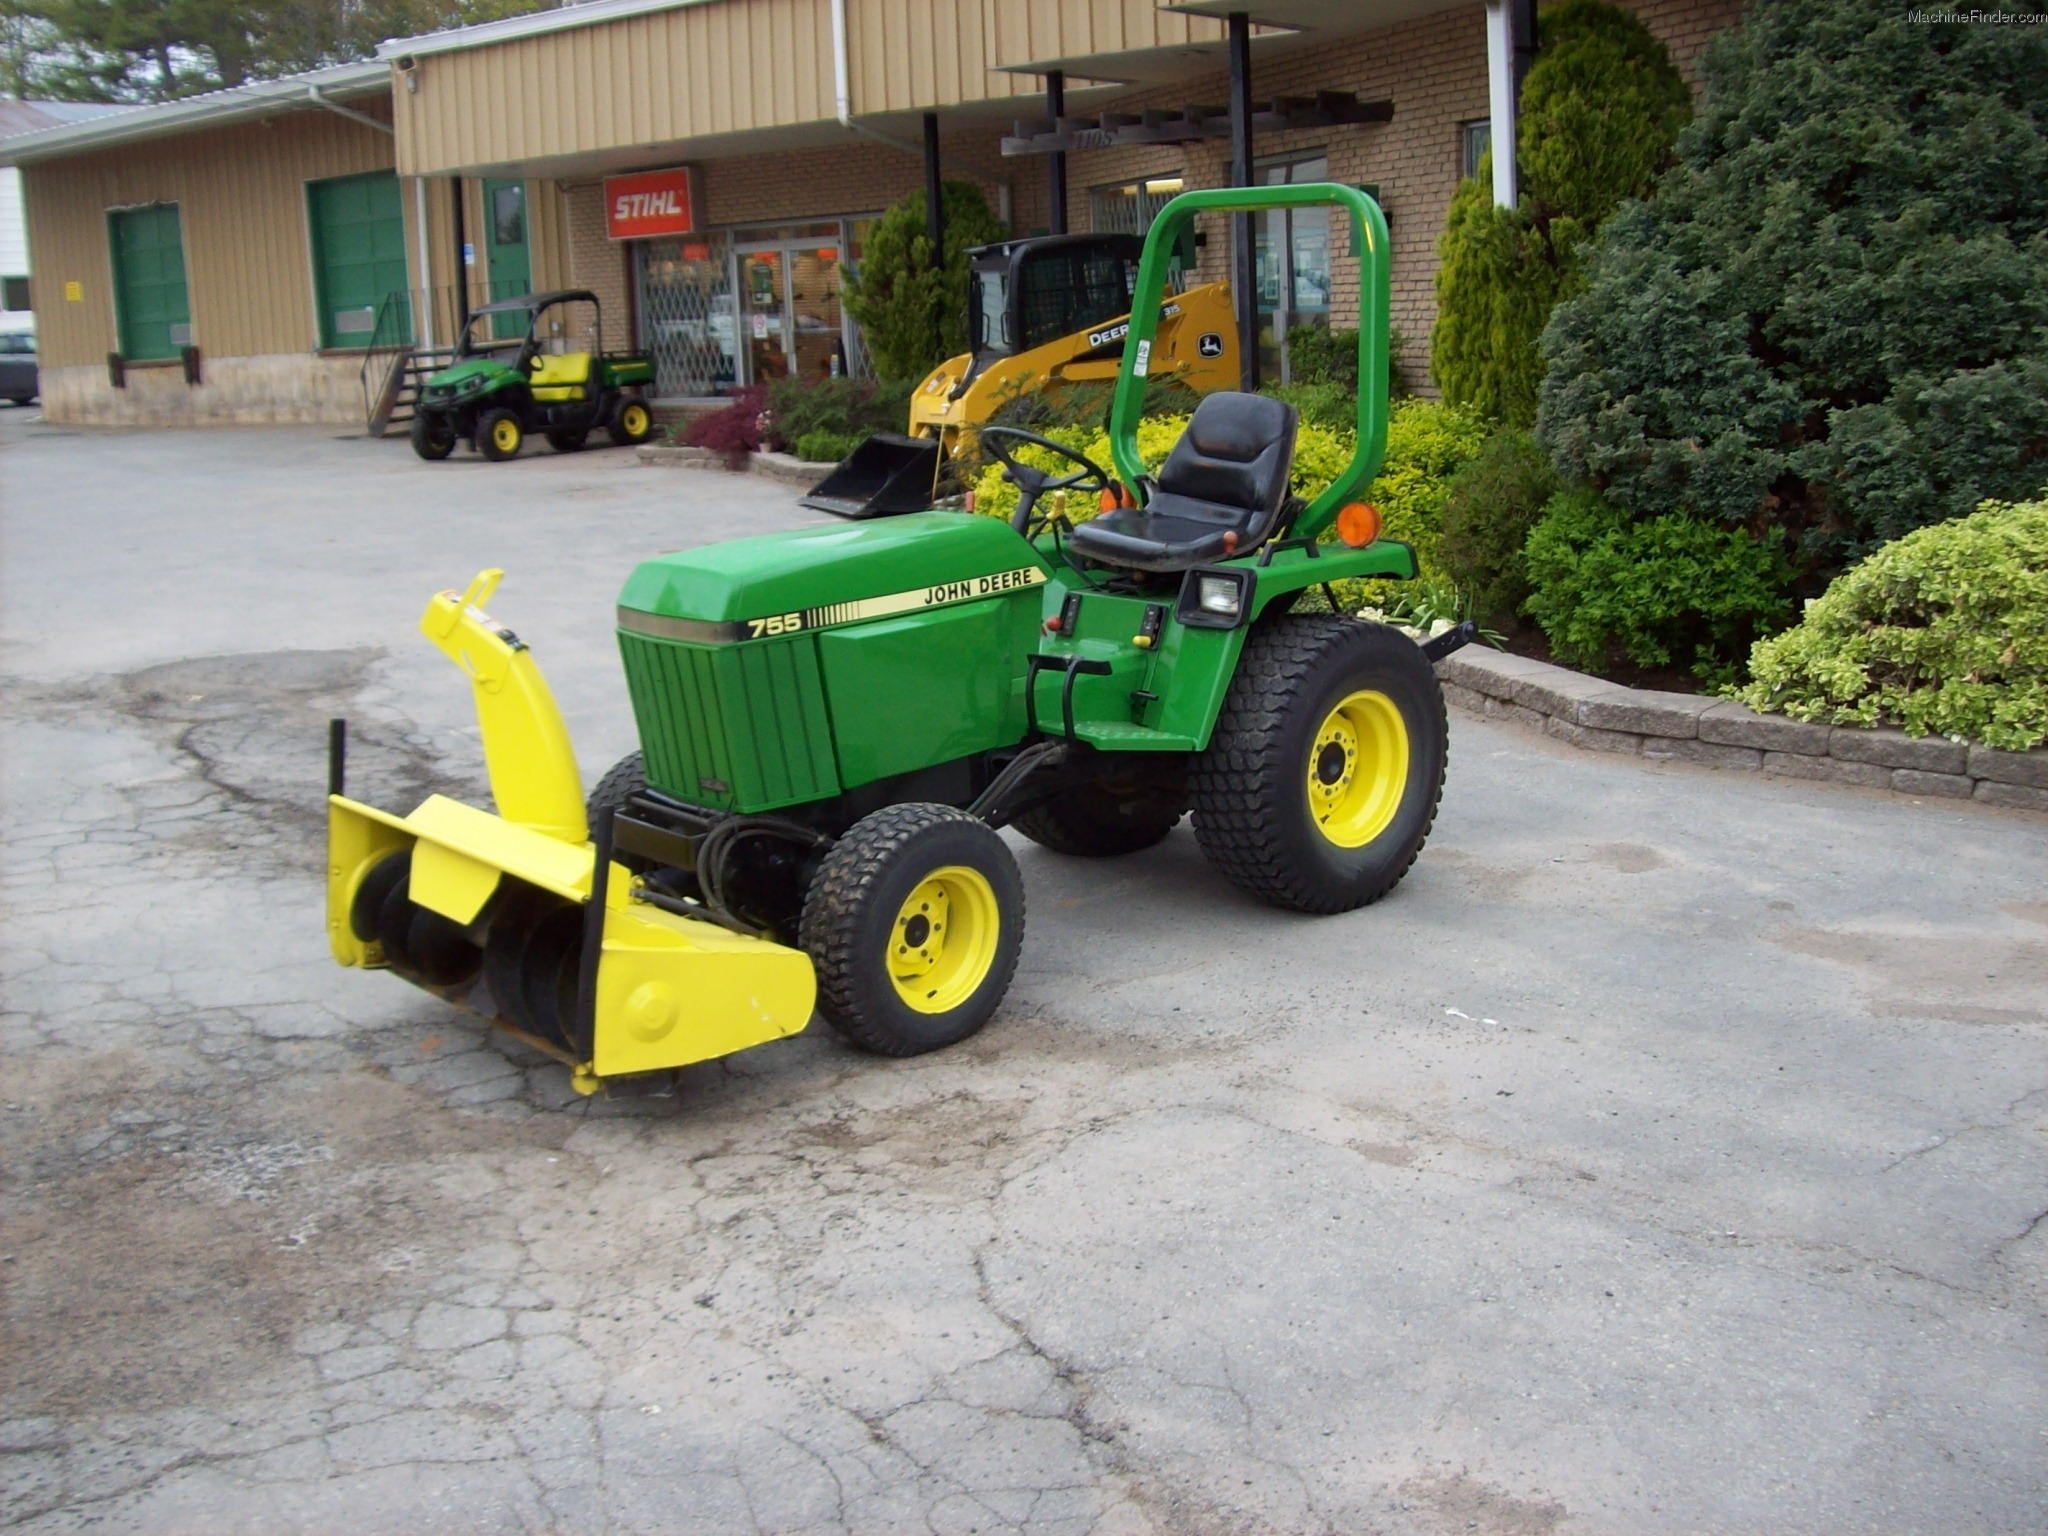 1989 john deere 755 tractors compact 1 40hp john. Black Bedroom Furniture Sets. Home Design Ideas